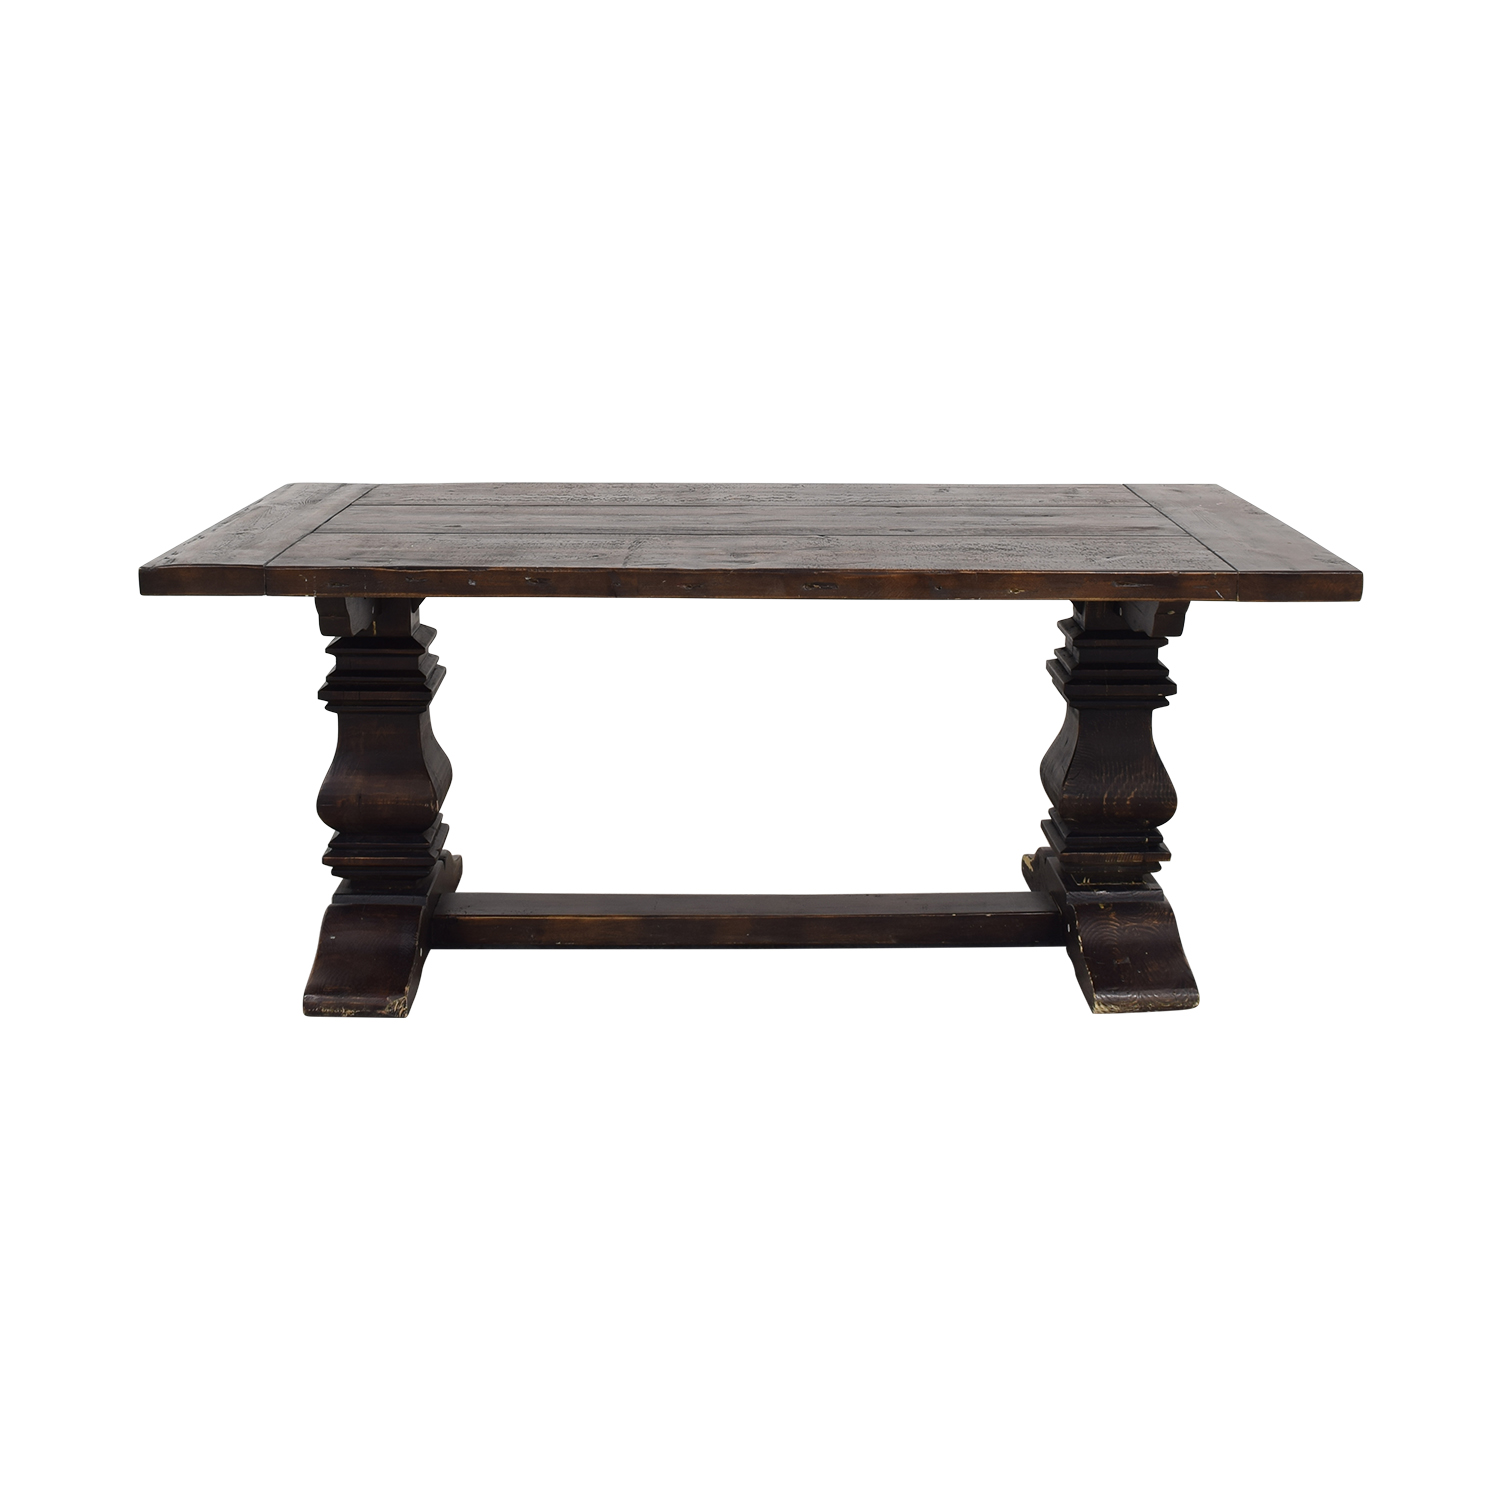 Restoration Hardware Restoration Hardware Testle Retangular Dining Table pa